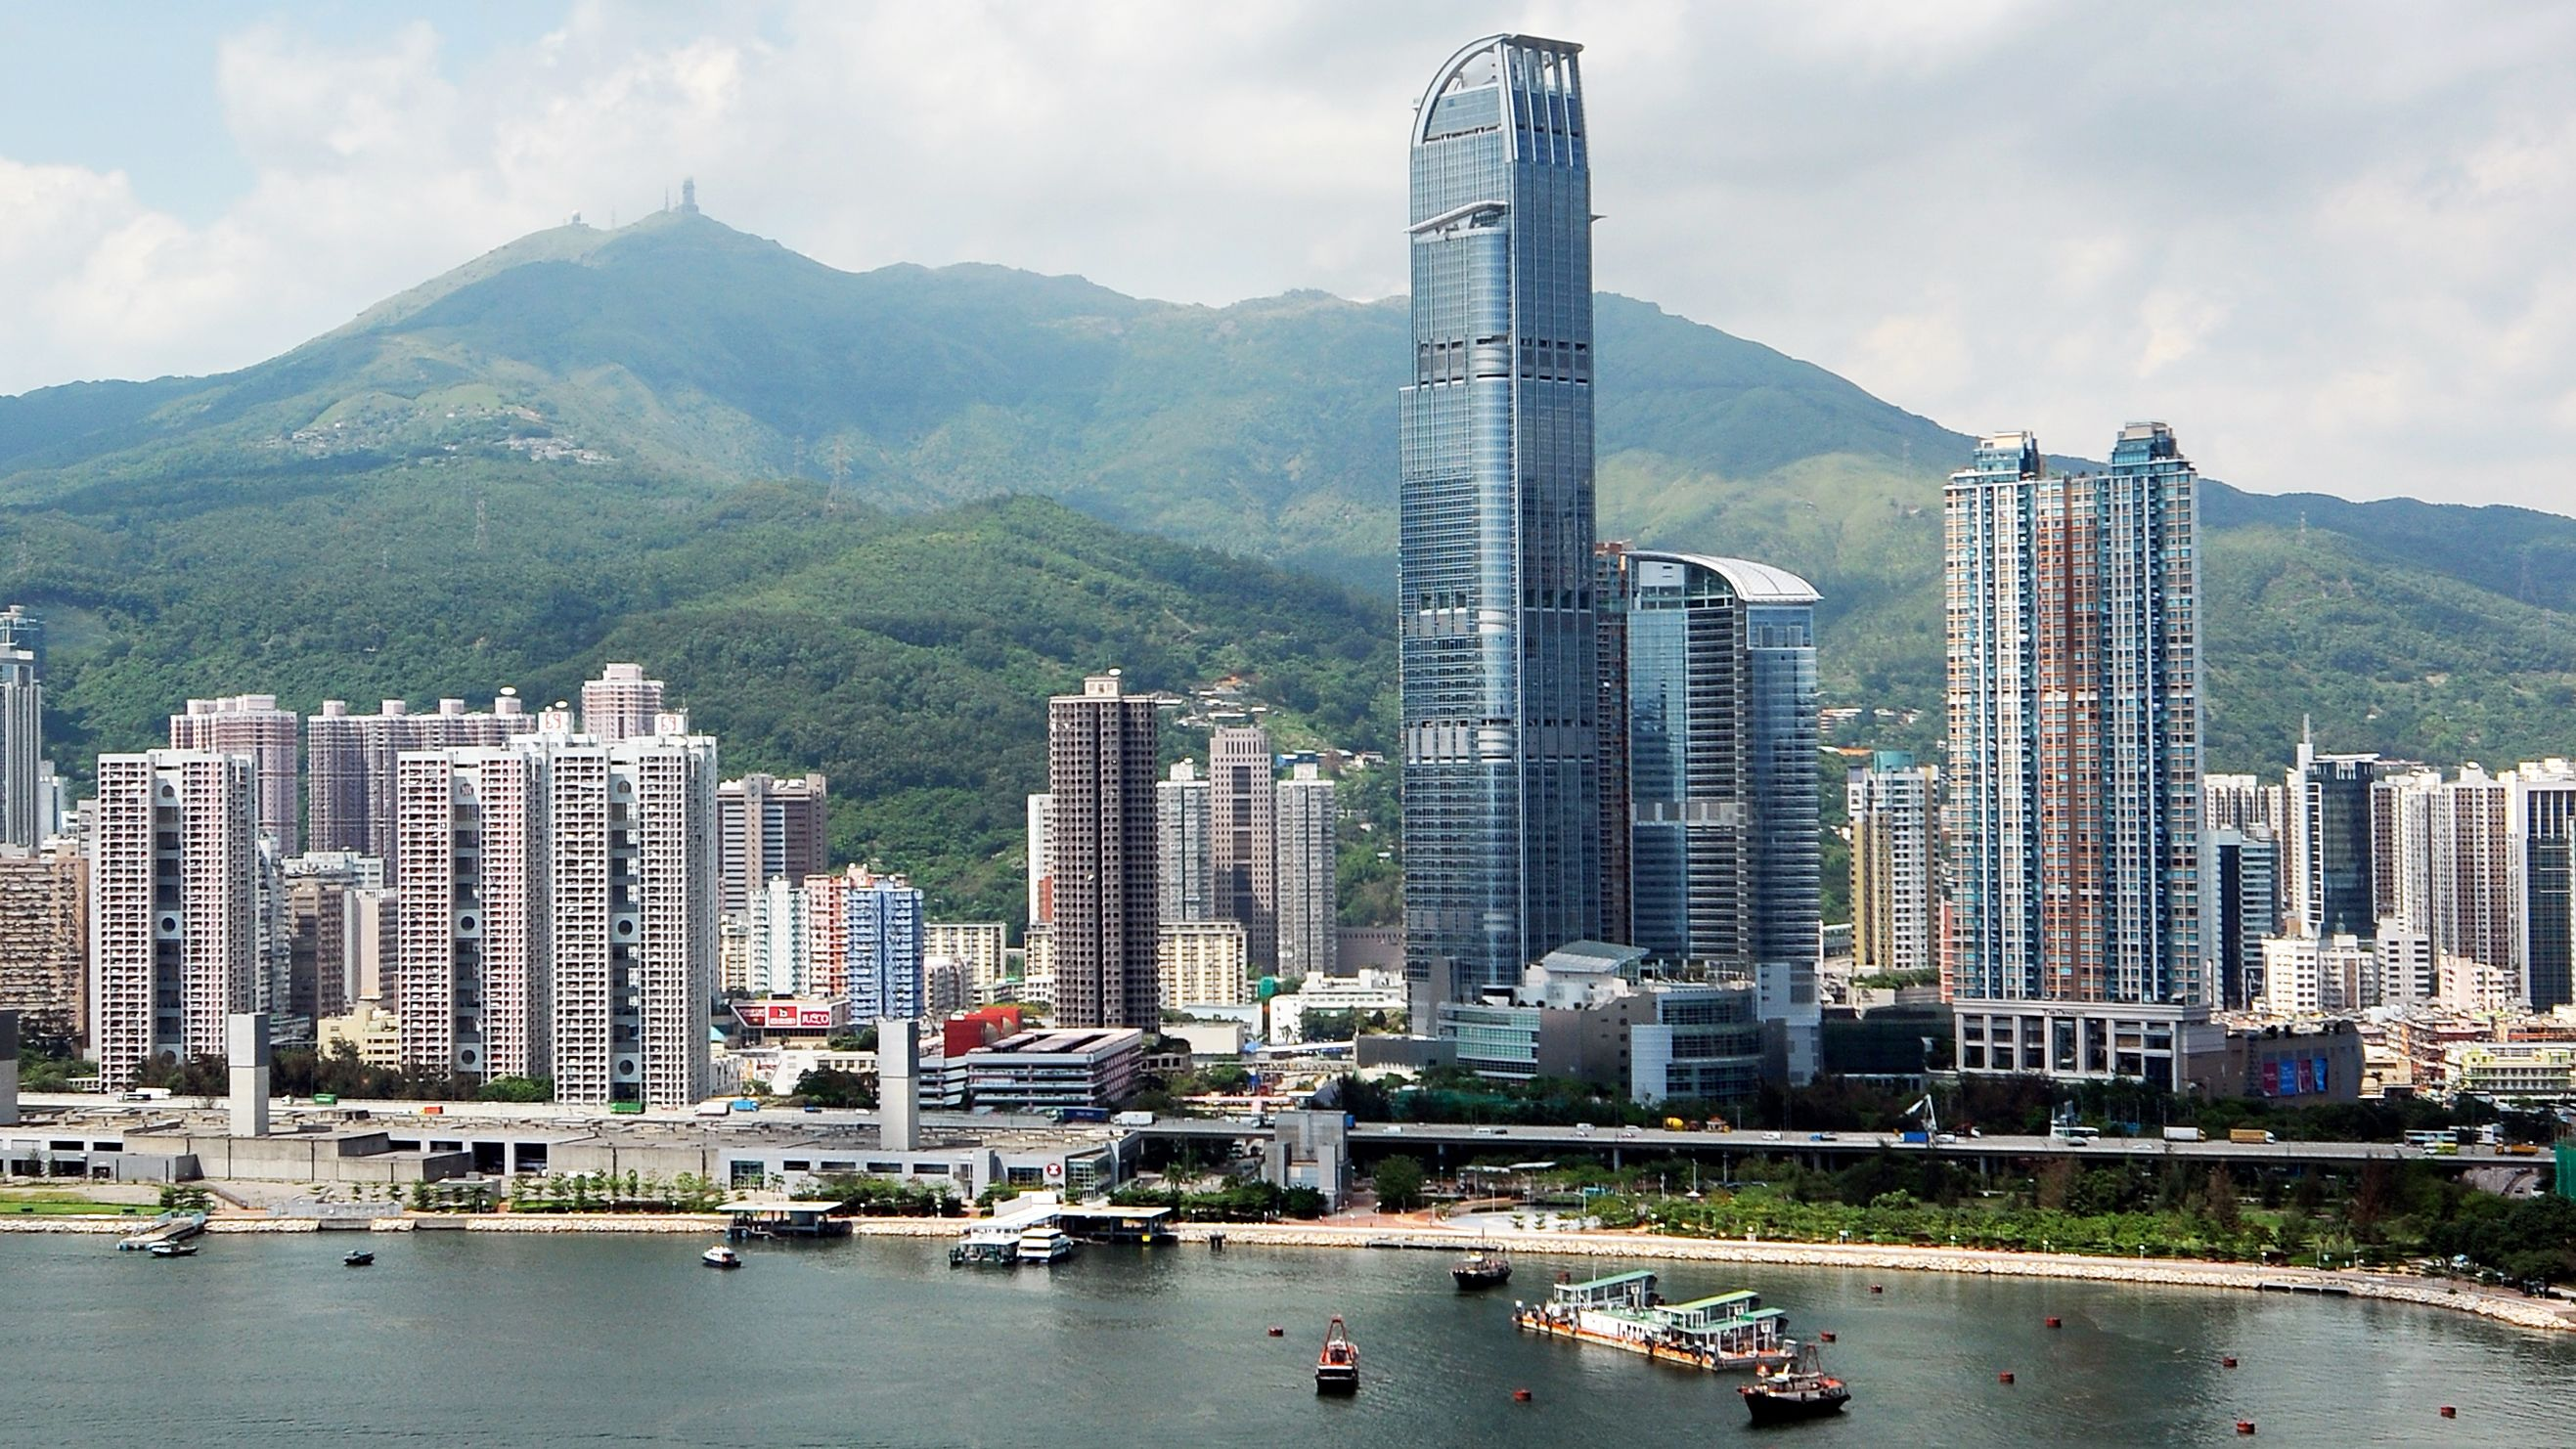 Aerial view of Victoria Harbour and buildings in Hong Kong